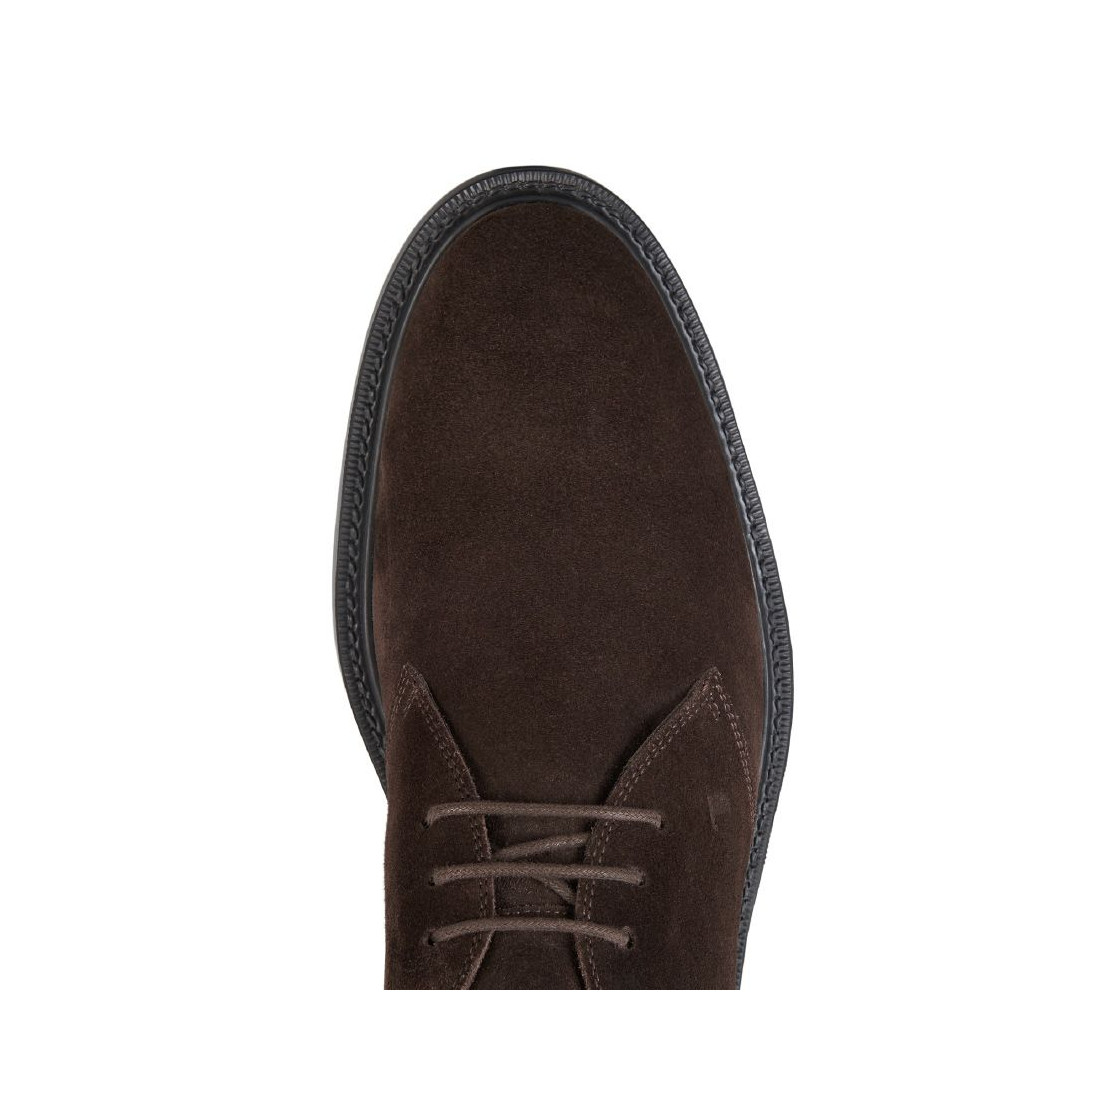 lace up ankle boots man tods xxm45a00d80re0s800 1928